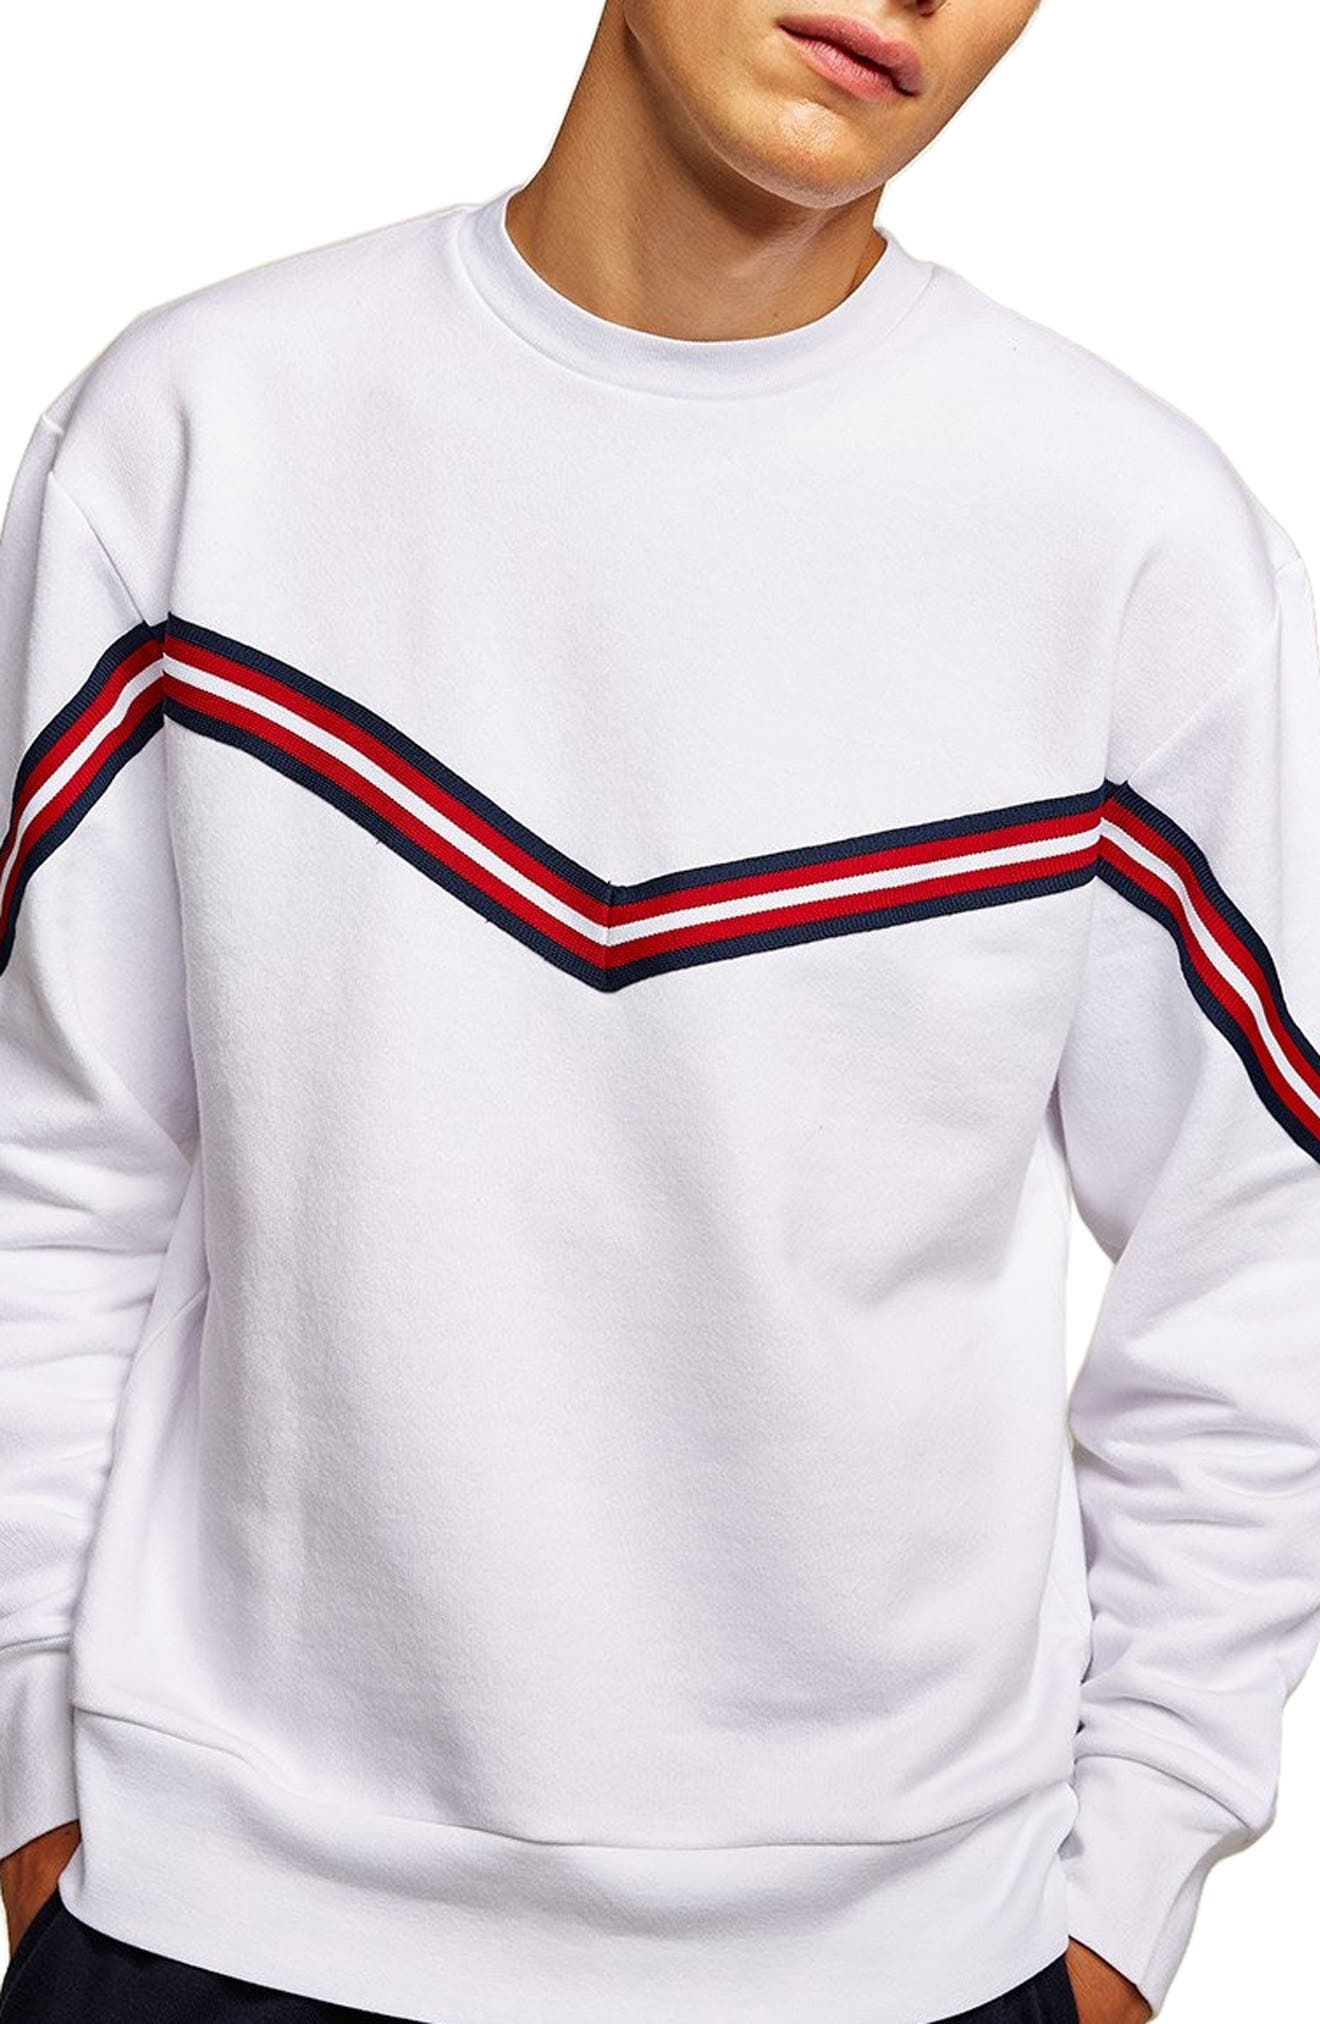 Chevron Tape Sweatshirt,                         Main,                         color, WHITE MULTI